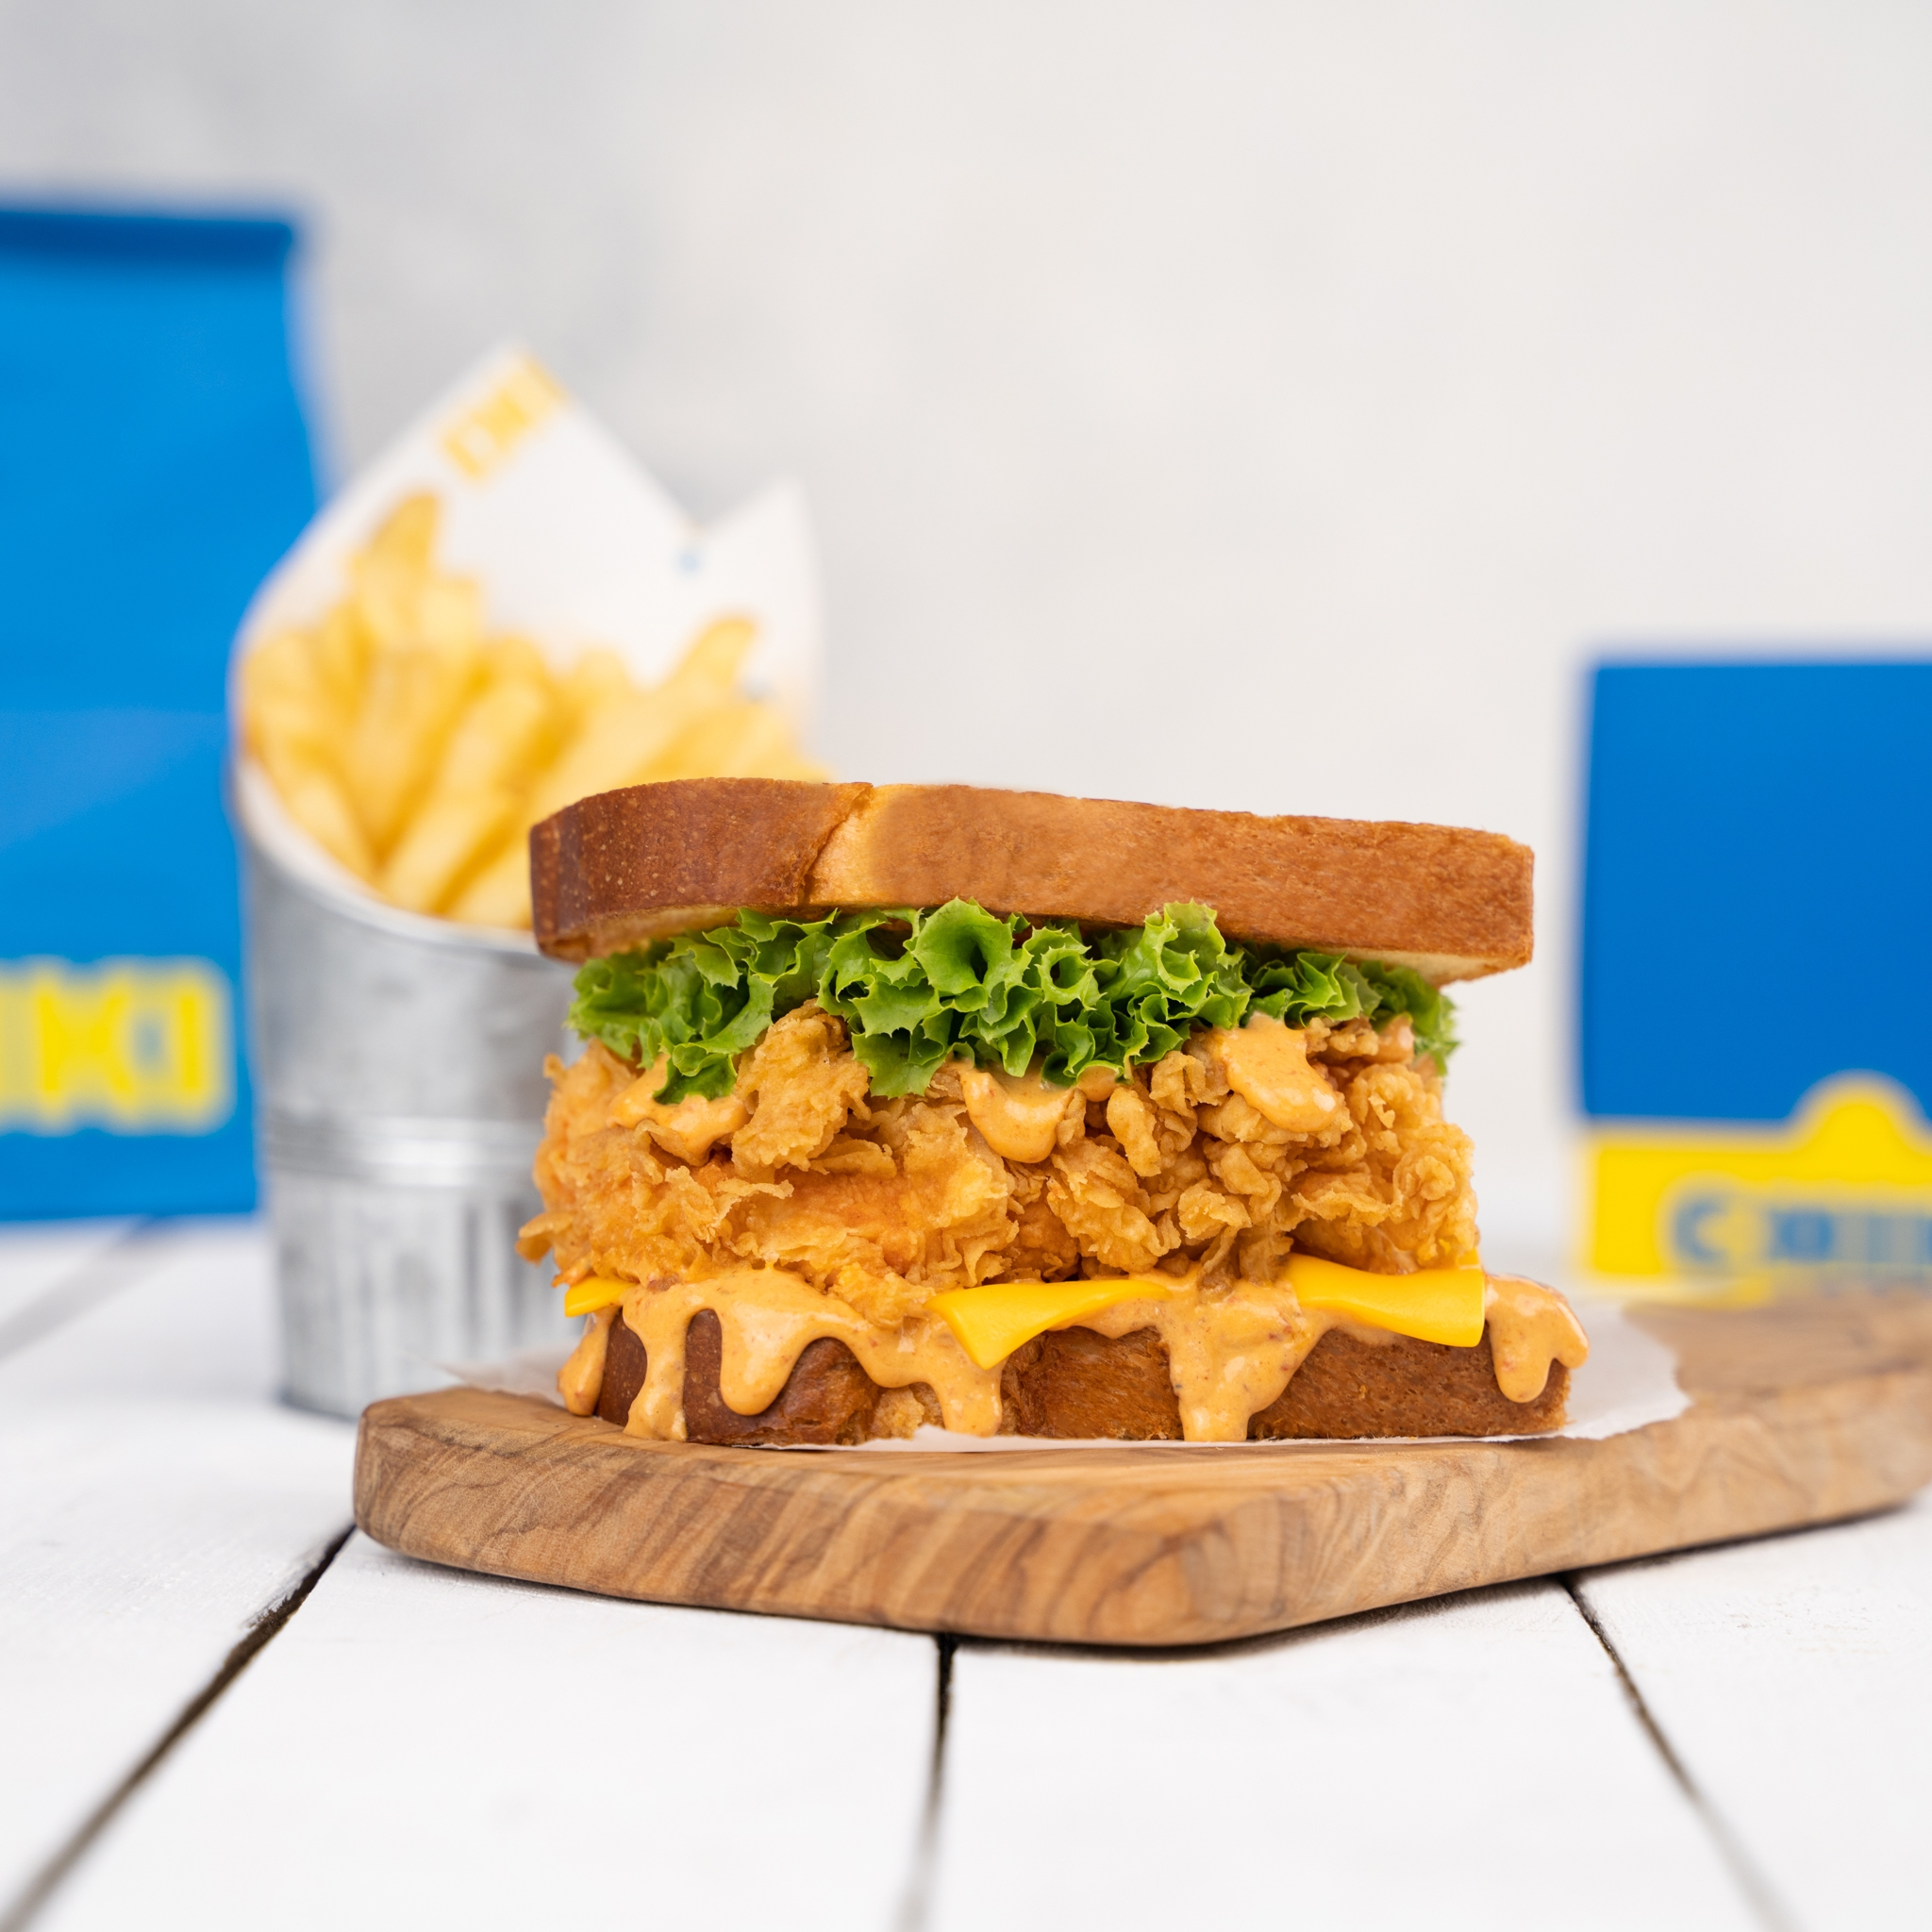 Award-winning Food Chain From Global Village Opens Up in Abu Dhabi